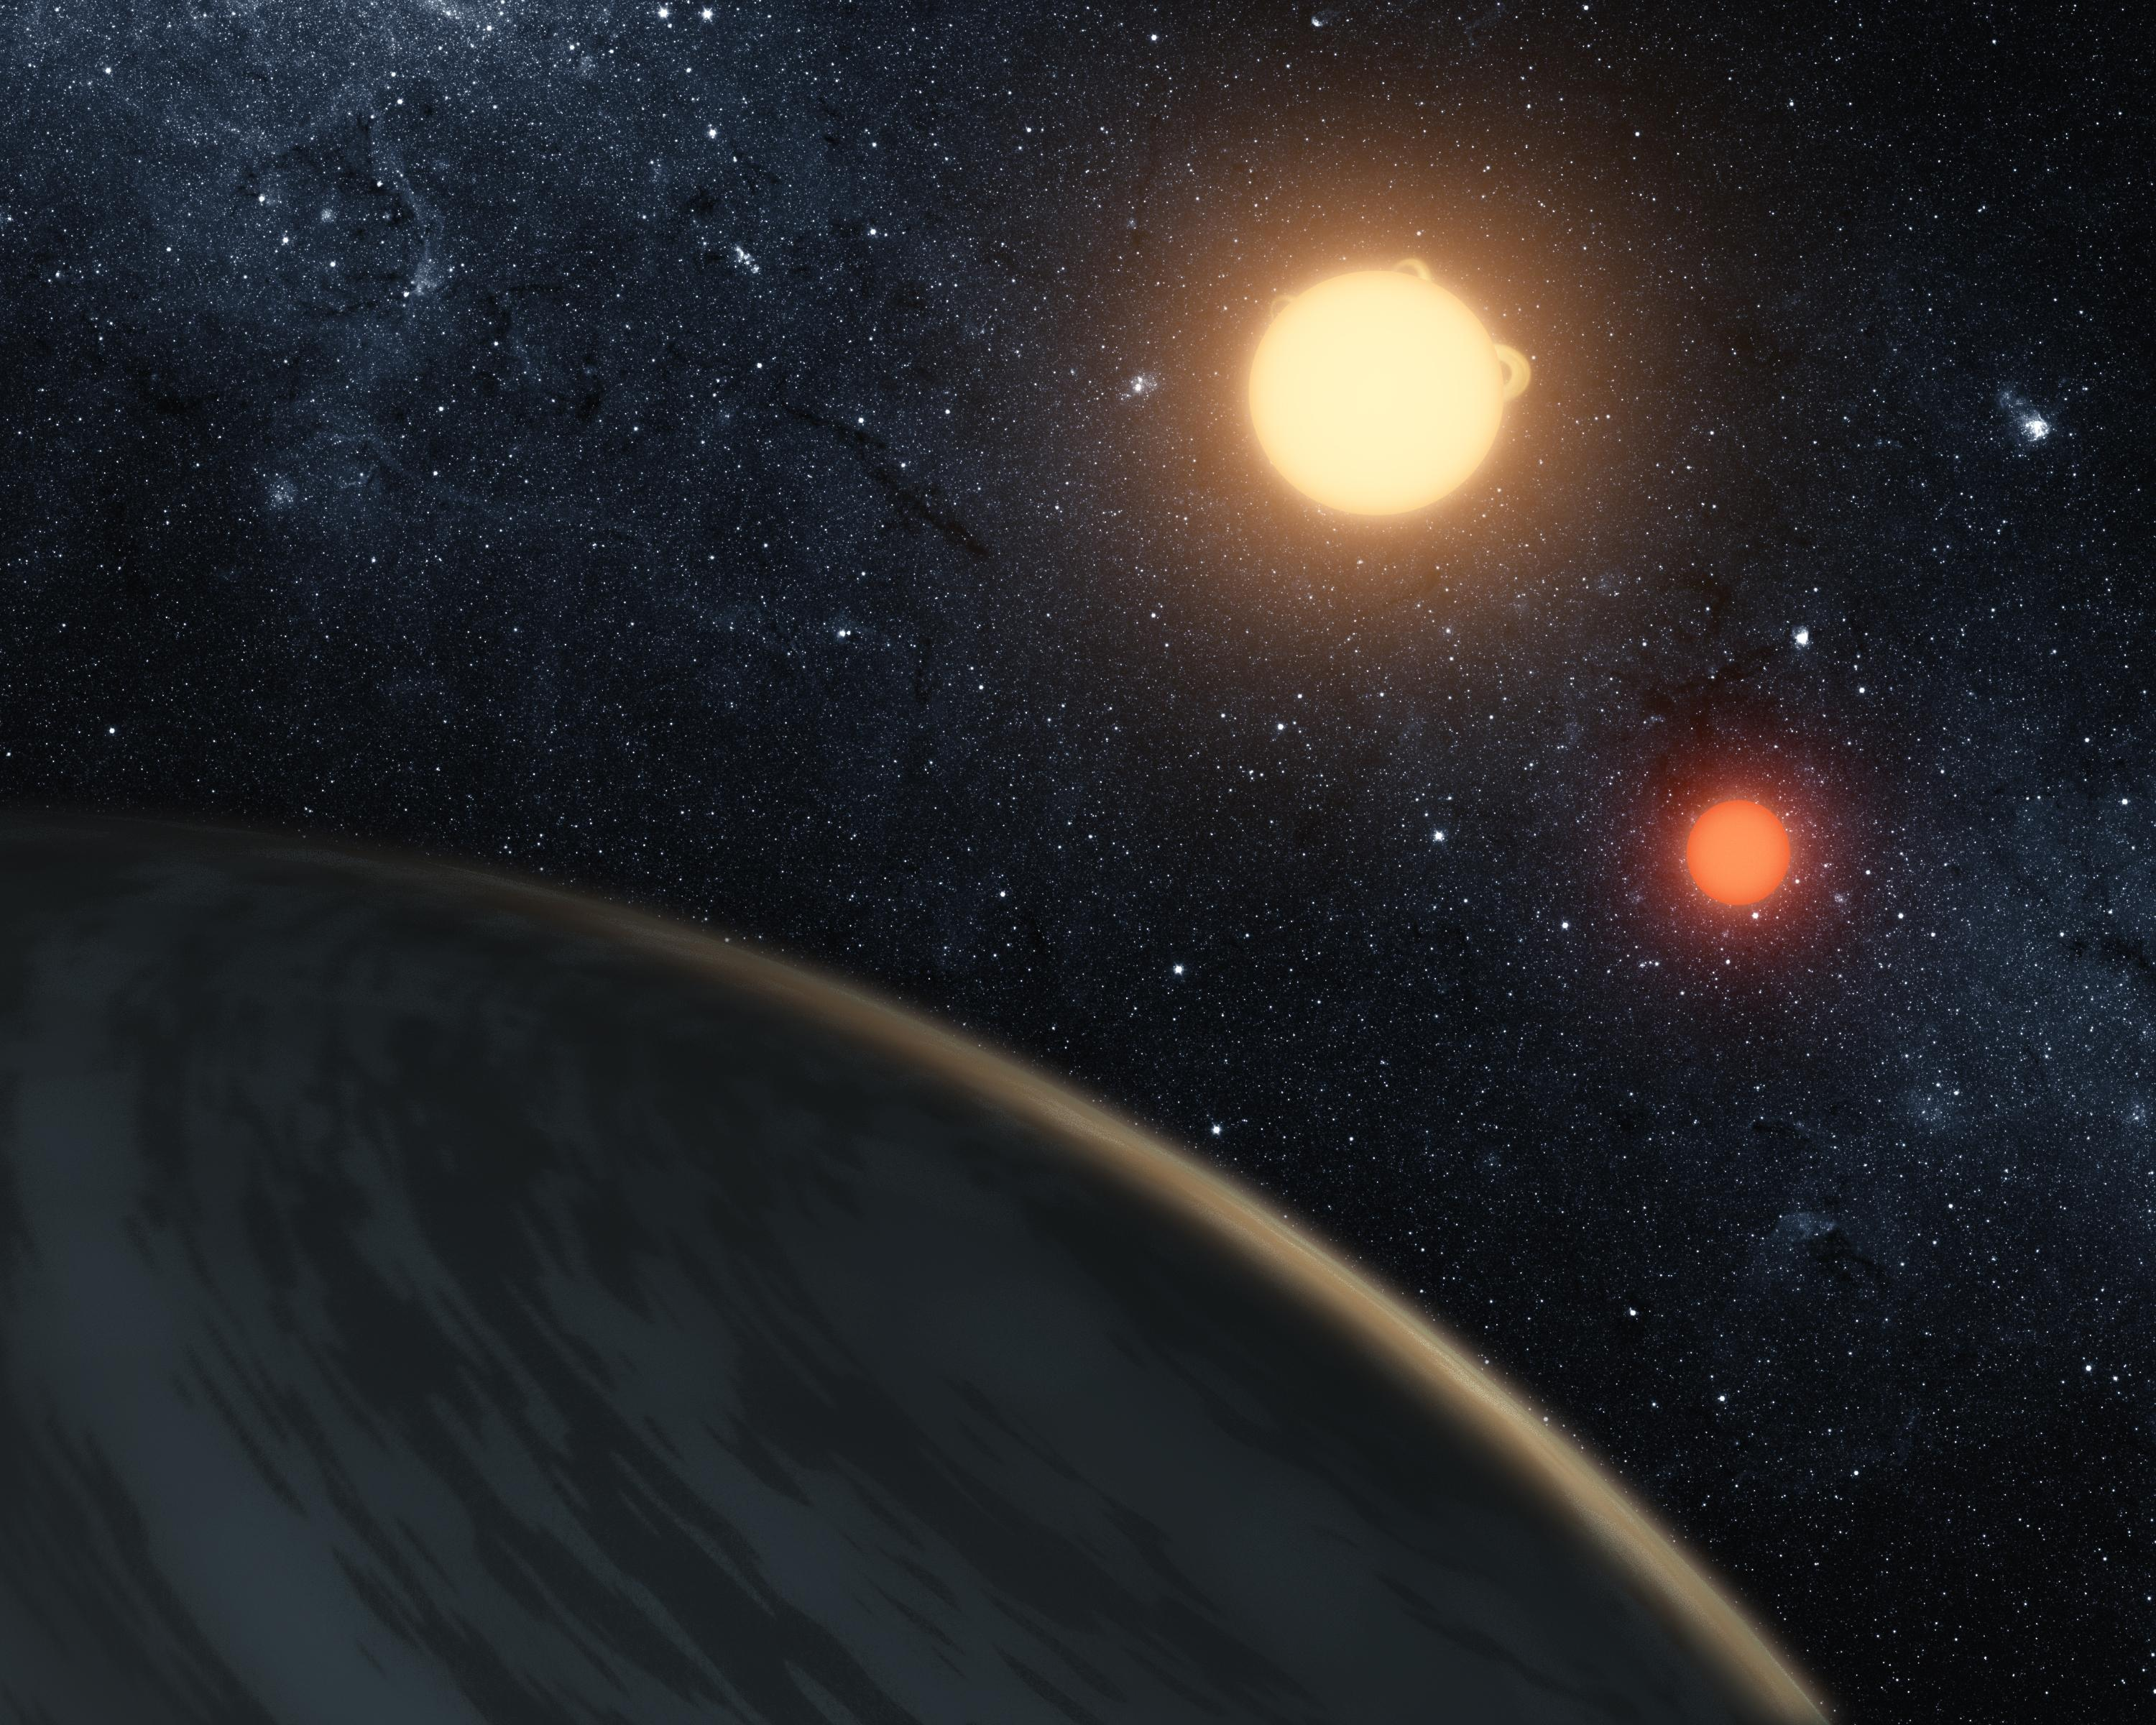 This artist's concept obtained October 30, 2018 courtesy of NASA/Ames/JPL-Caltech/T. Pyle, shows Kepler-16b, the first planet around a double-star system.